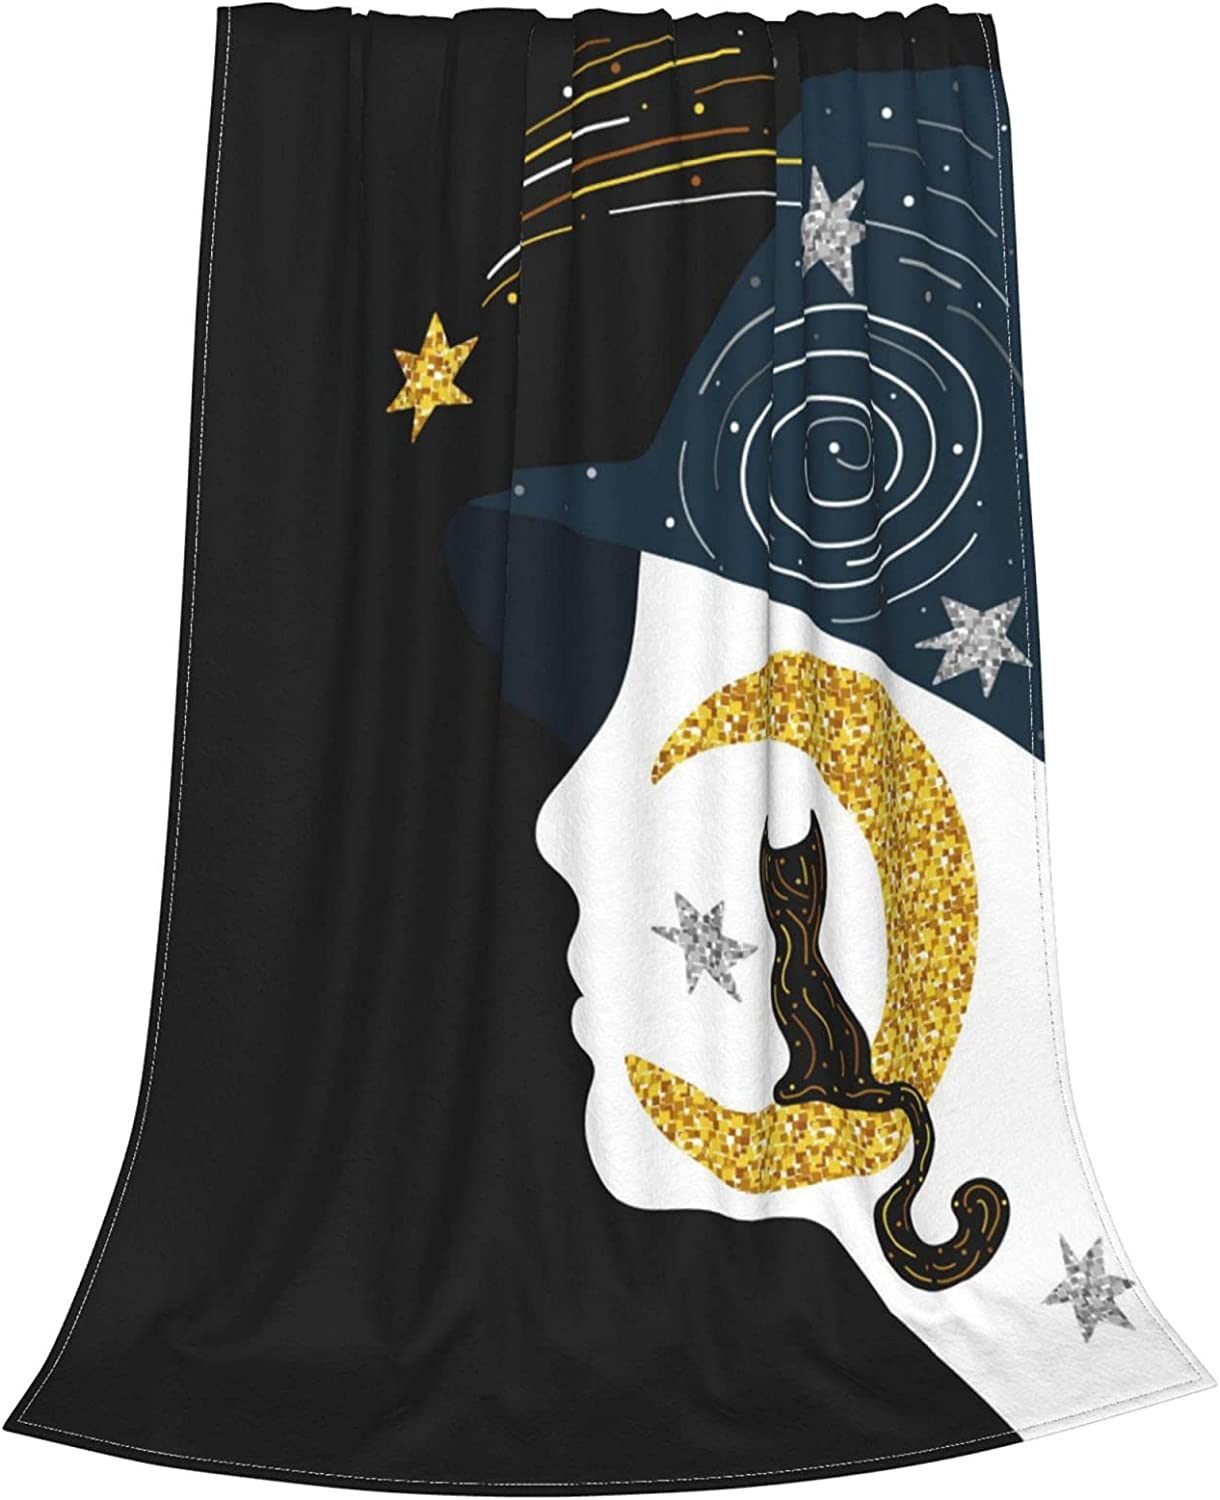 Black Cat On A Golden Moon Blanket Max 61% OFF Flannel Soft lowest price Wa Throw